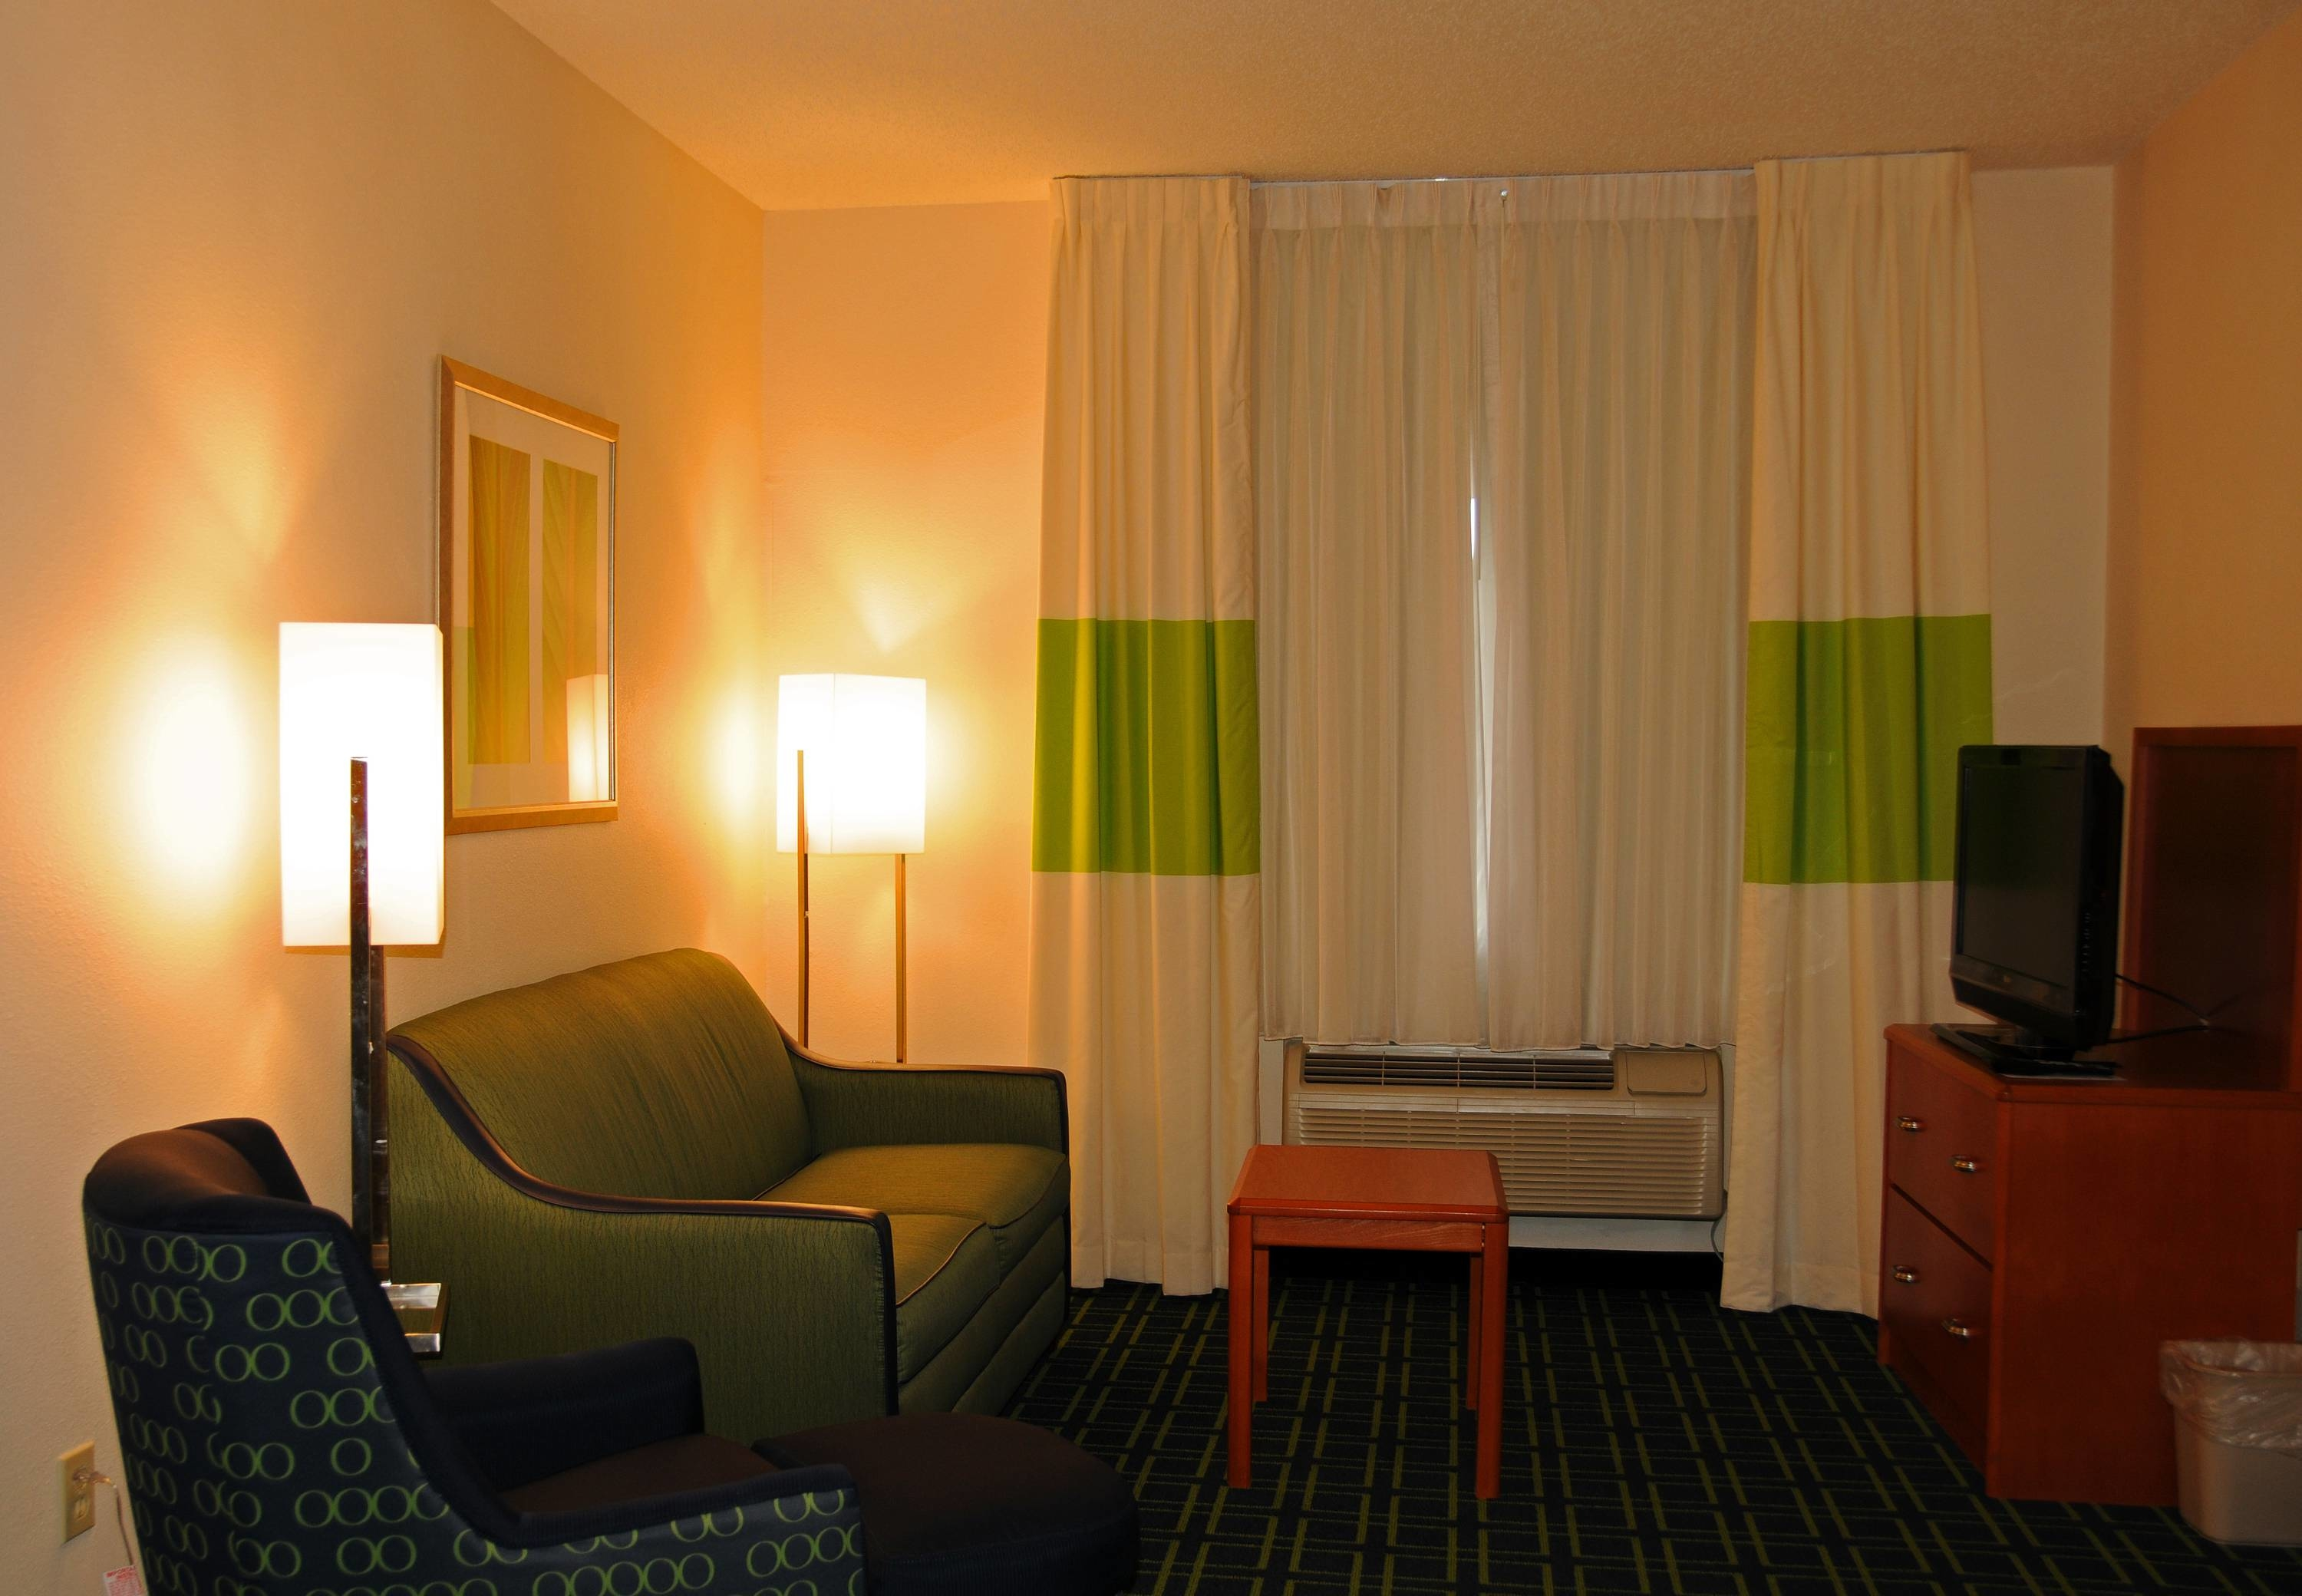 Fairfield Inn & Suites by Marriott Spearfish image 2